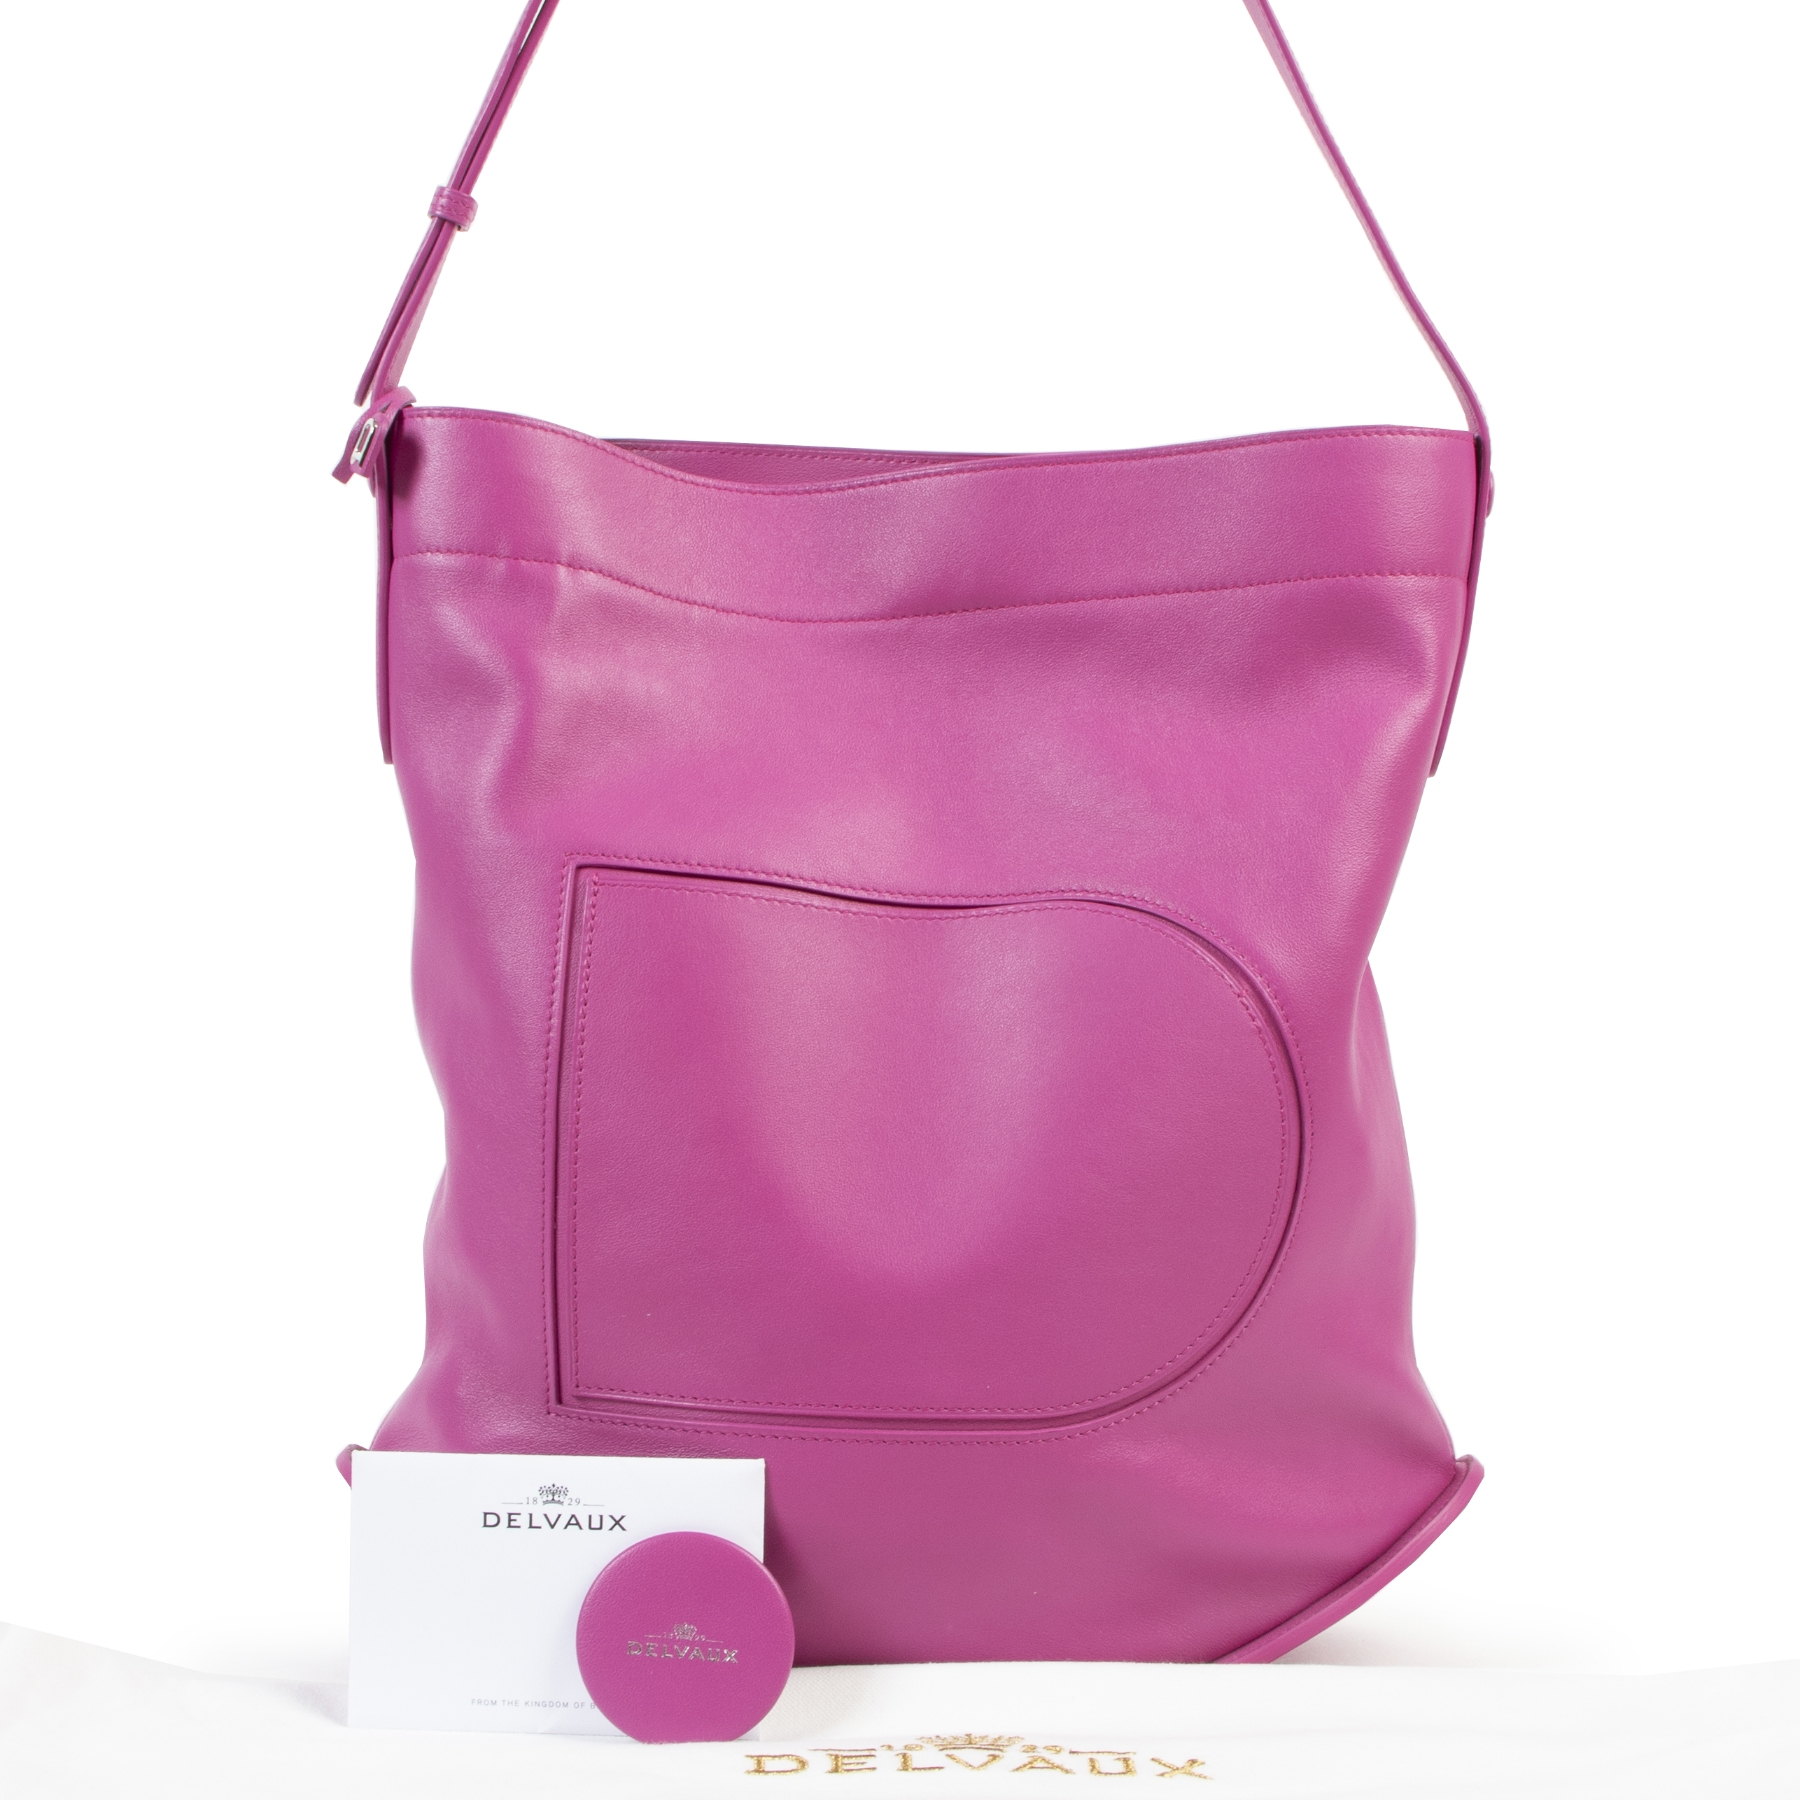 100% authentic Delvaux Le Pin Allure Héliotrope Pink Shoulder Bag for the best price at Labellov secondhand luxury in Antwerp.